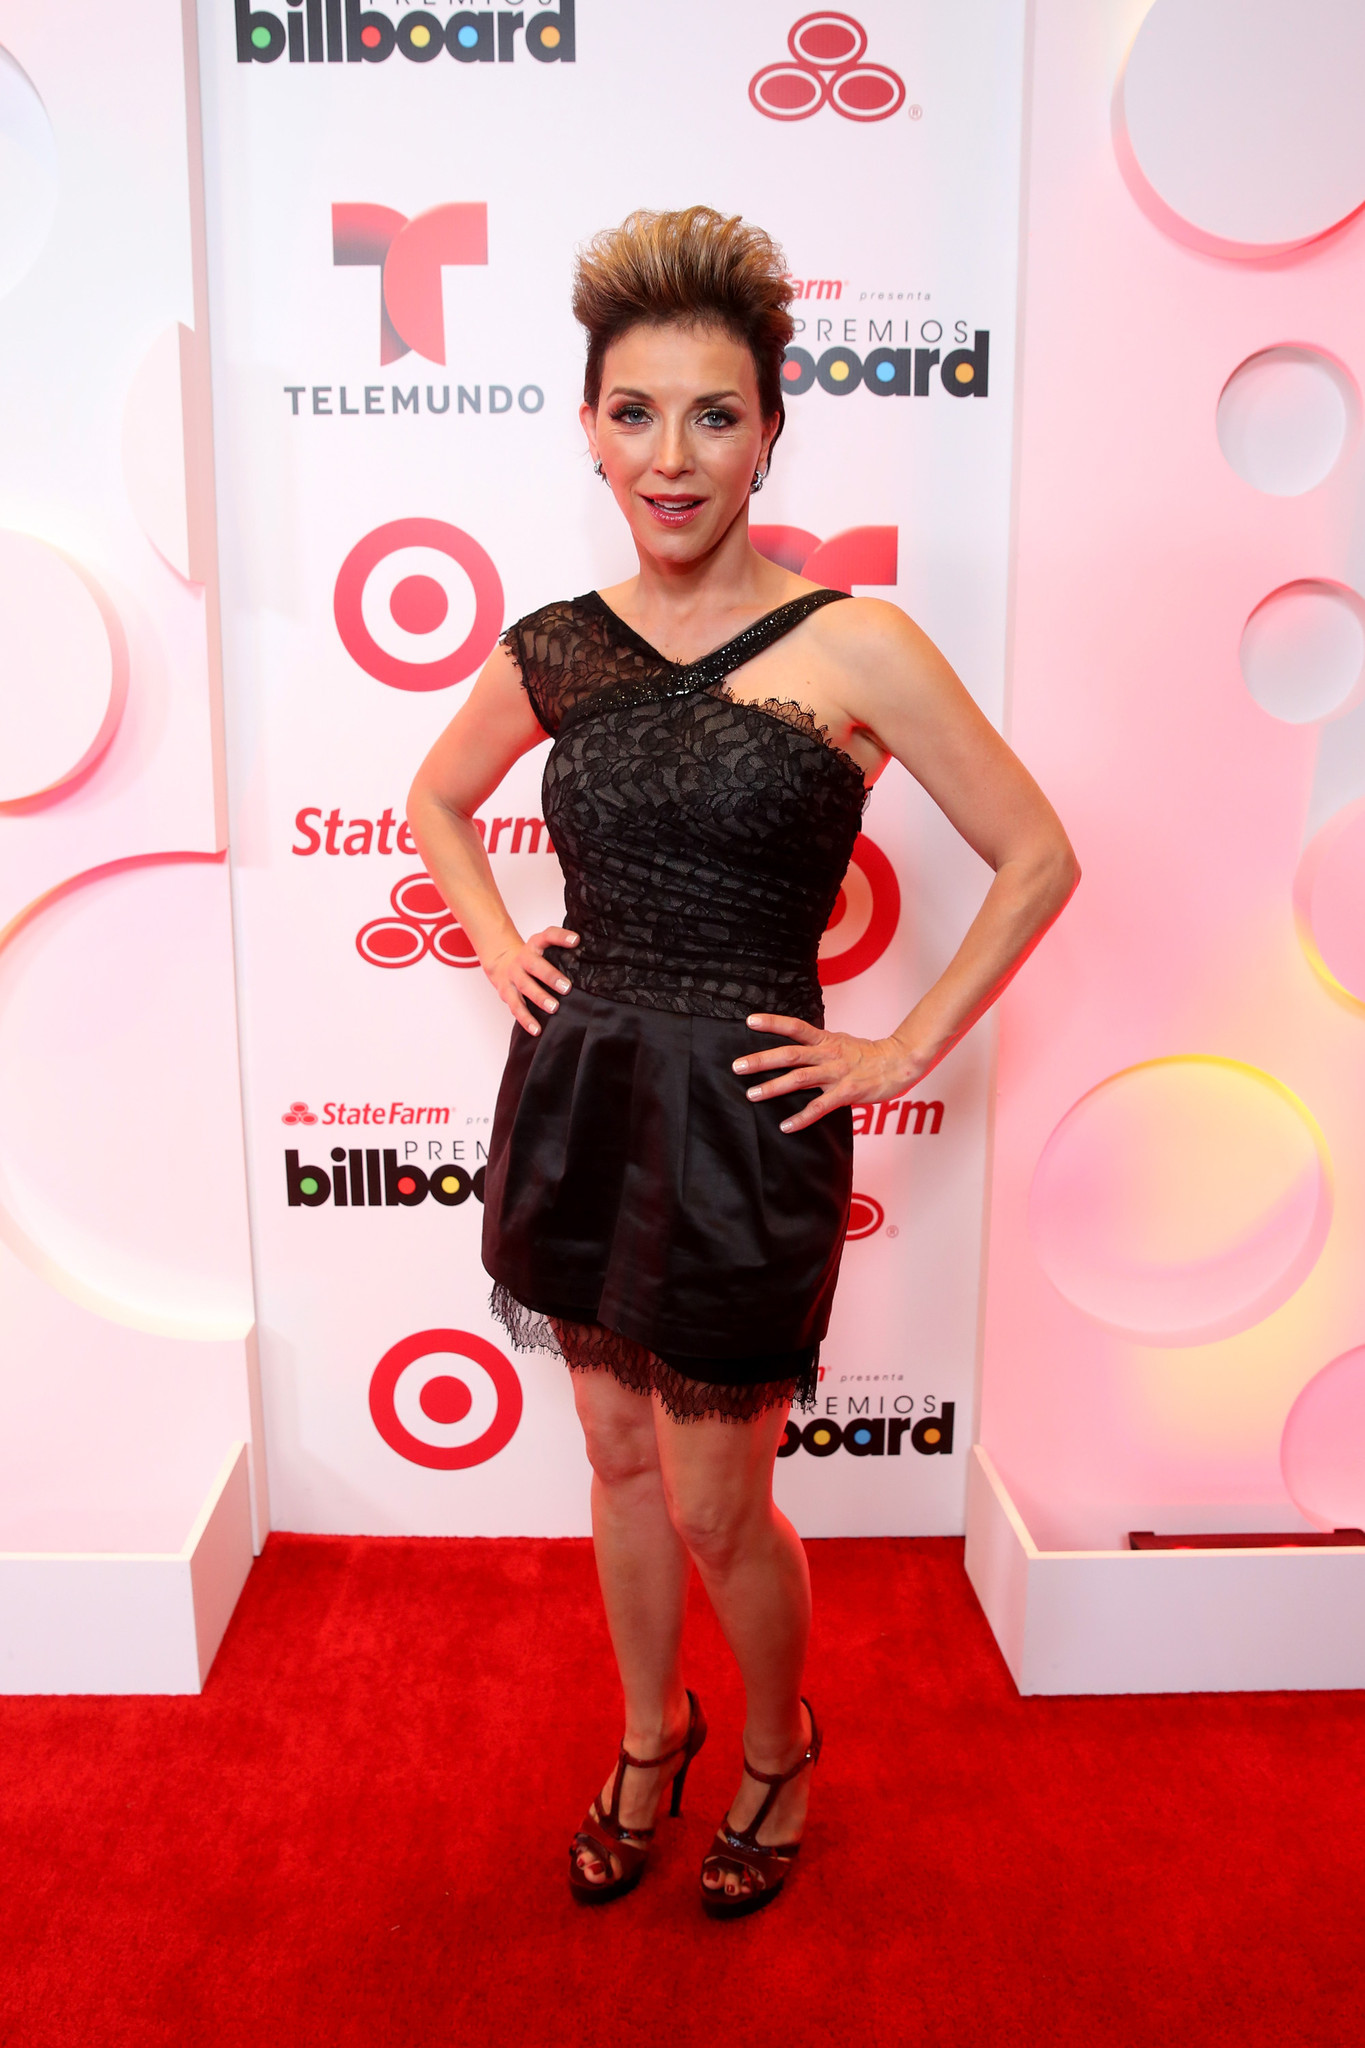 Billboard Latin Music Awards - 2014 Billboard Latin Music Awards - Backstage Photo